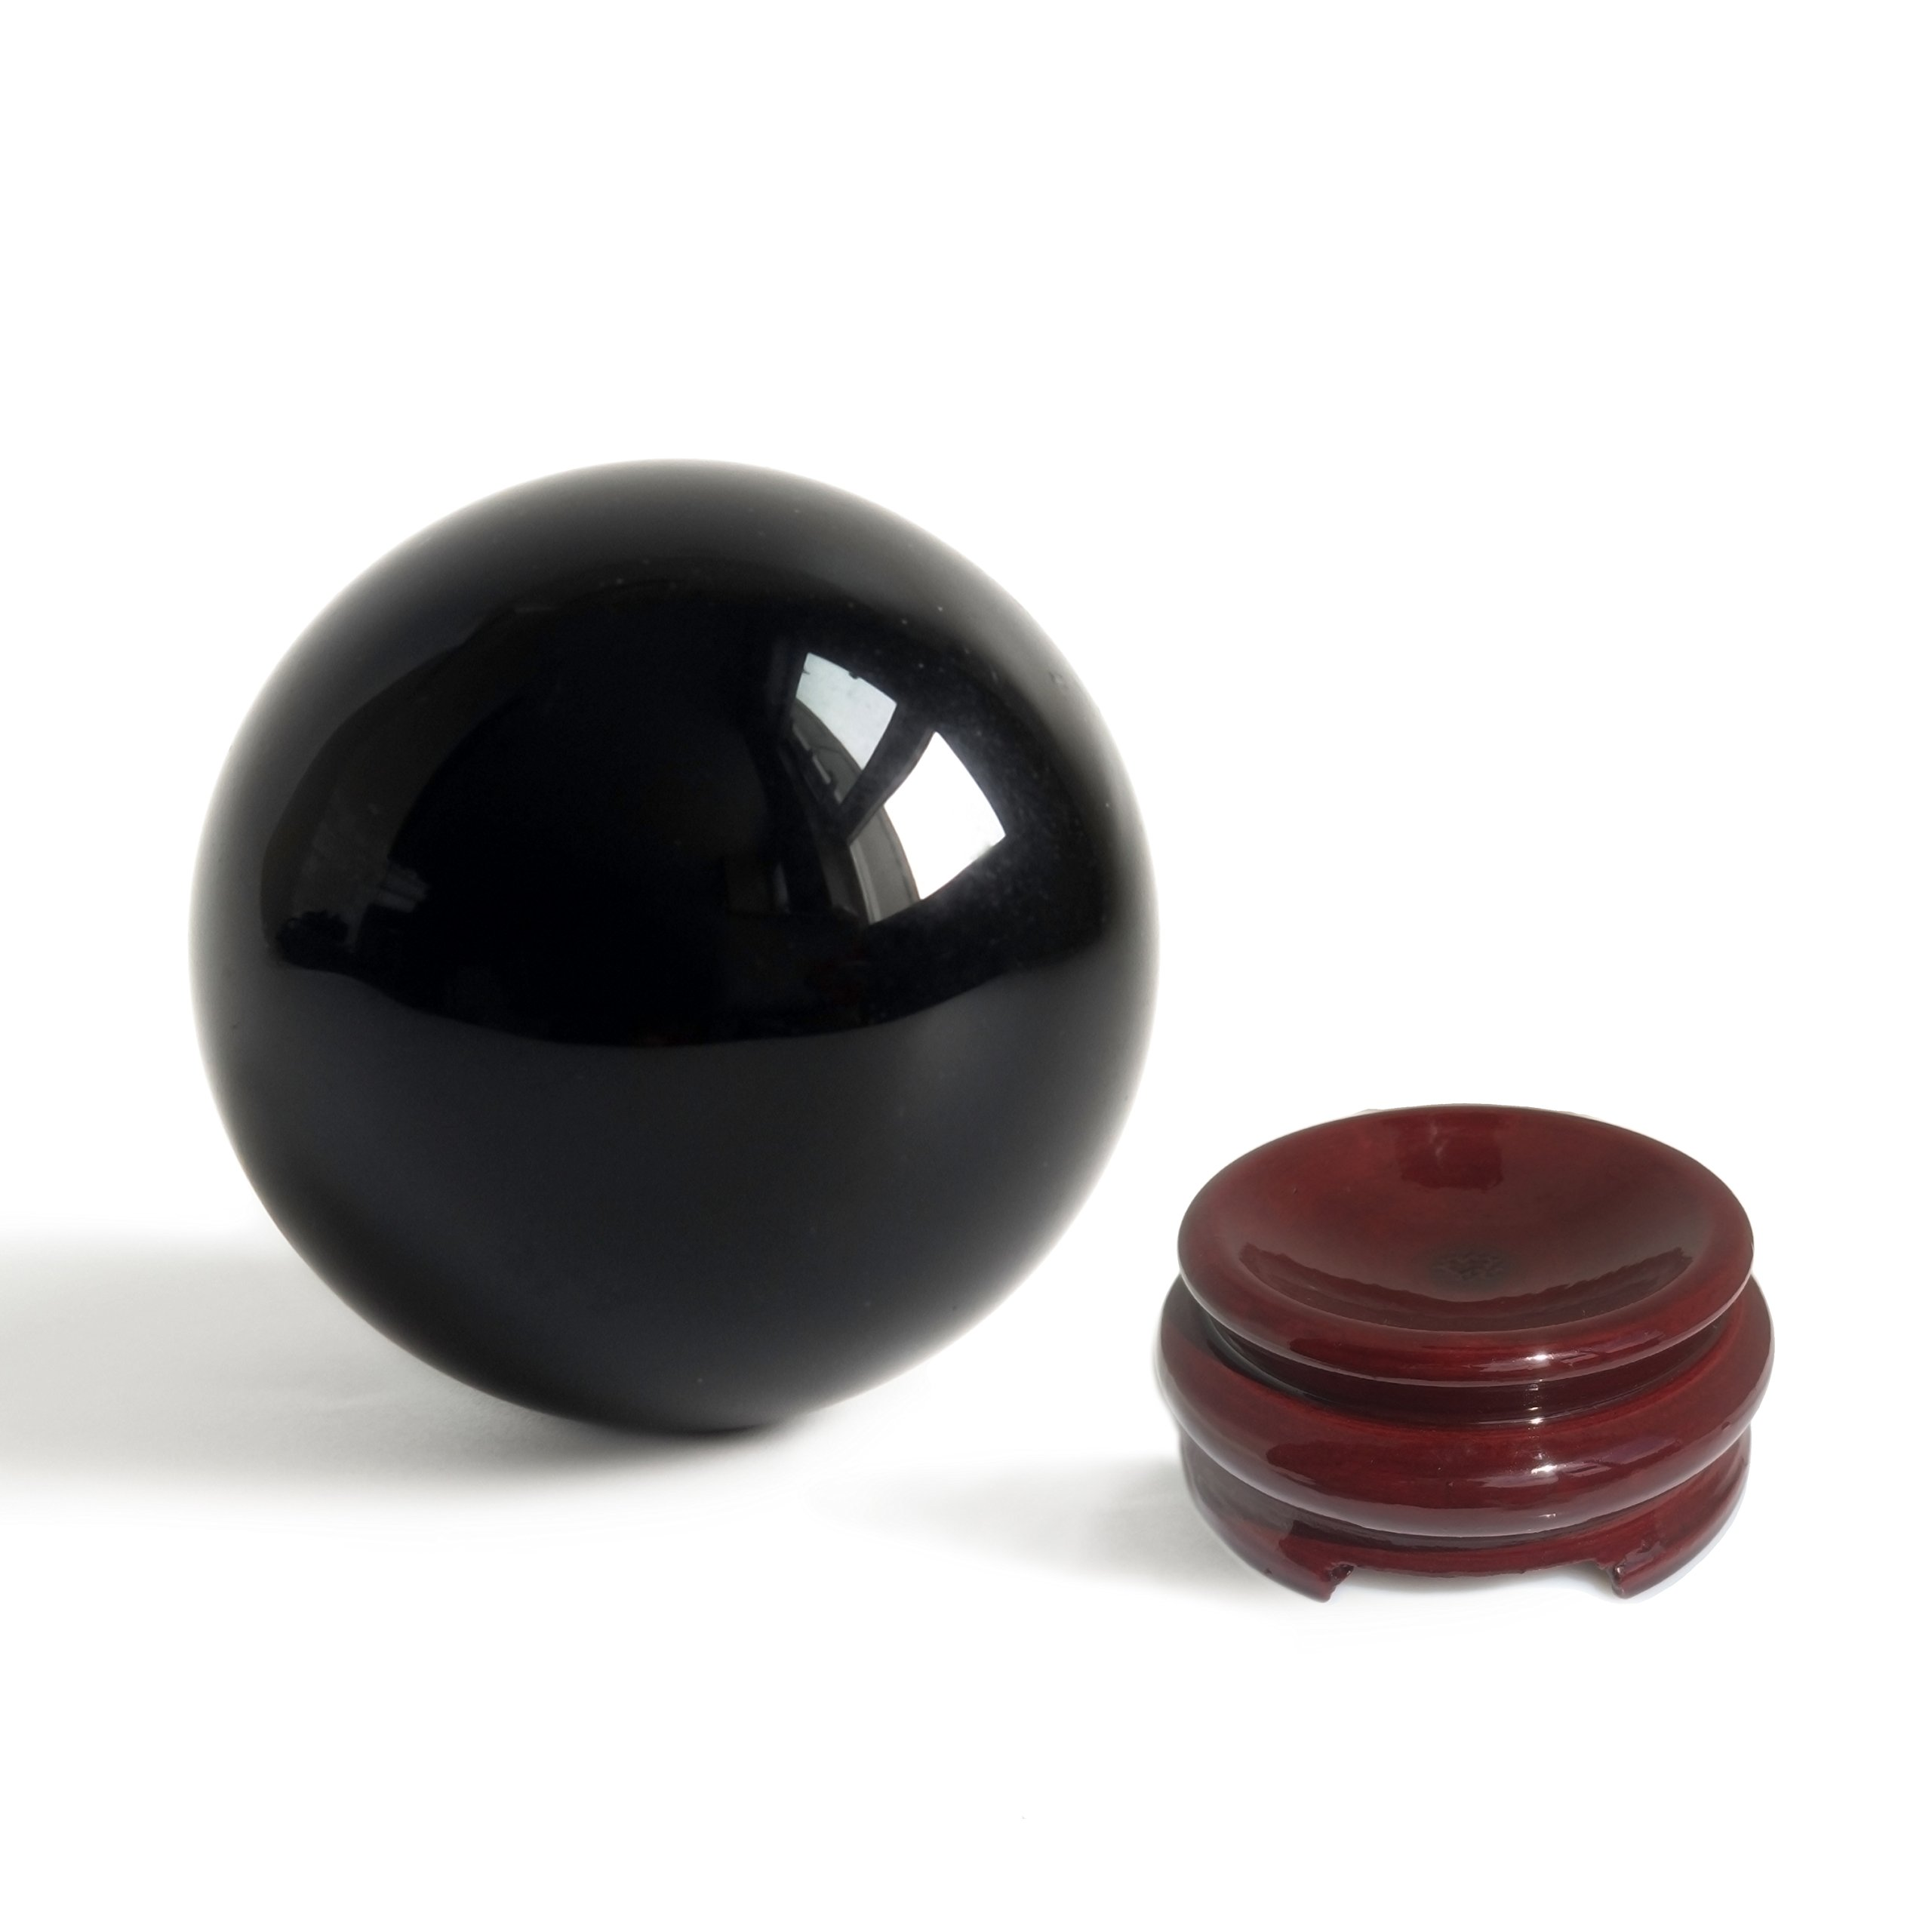 Mina Heal Obsidian Crystal Ball 160 mm/6.3'' for Fengshui Ball, Scrying, Meditation, Crystal Healing, Divination Sphere, Home Decoration, 100% Natural and Genuine by Mina Heal (Image #4)